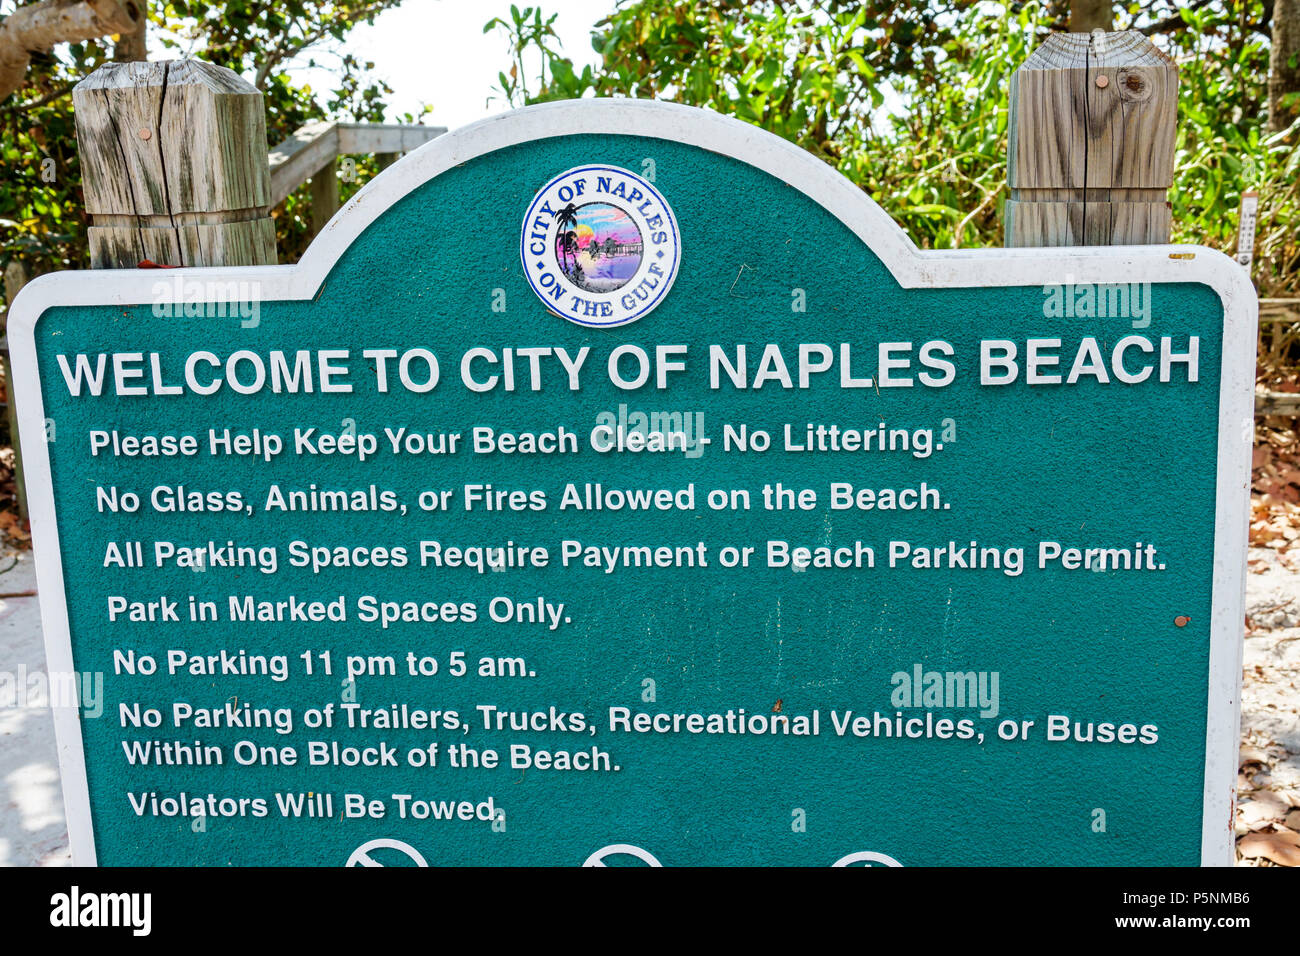 Naples Florida City of Naples Beach park sign use rules guidelines no littering glass animals fires - Stock Image